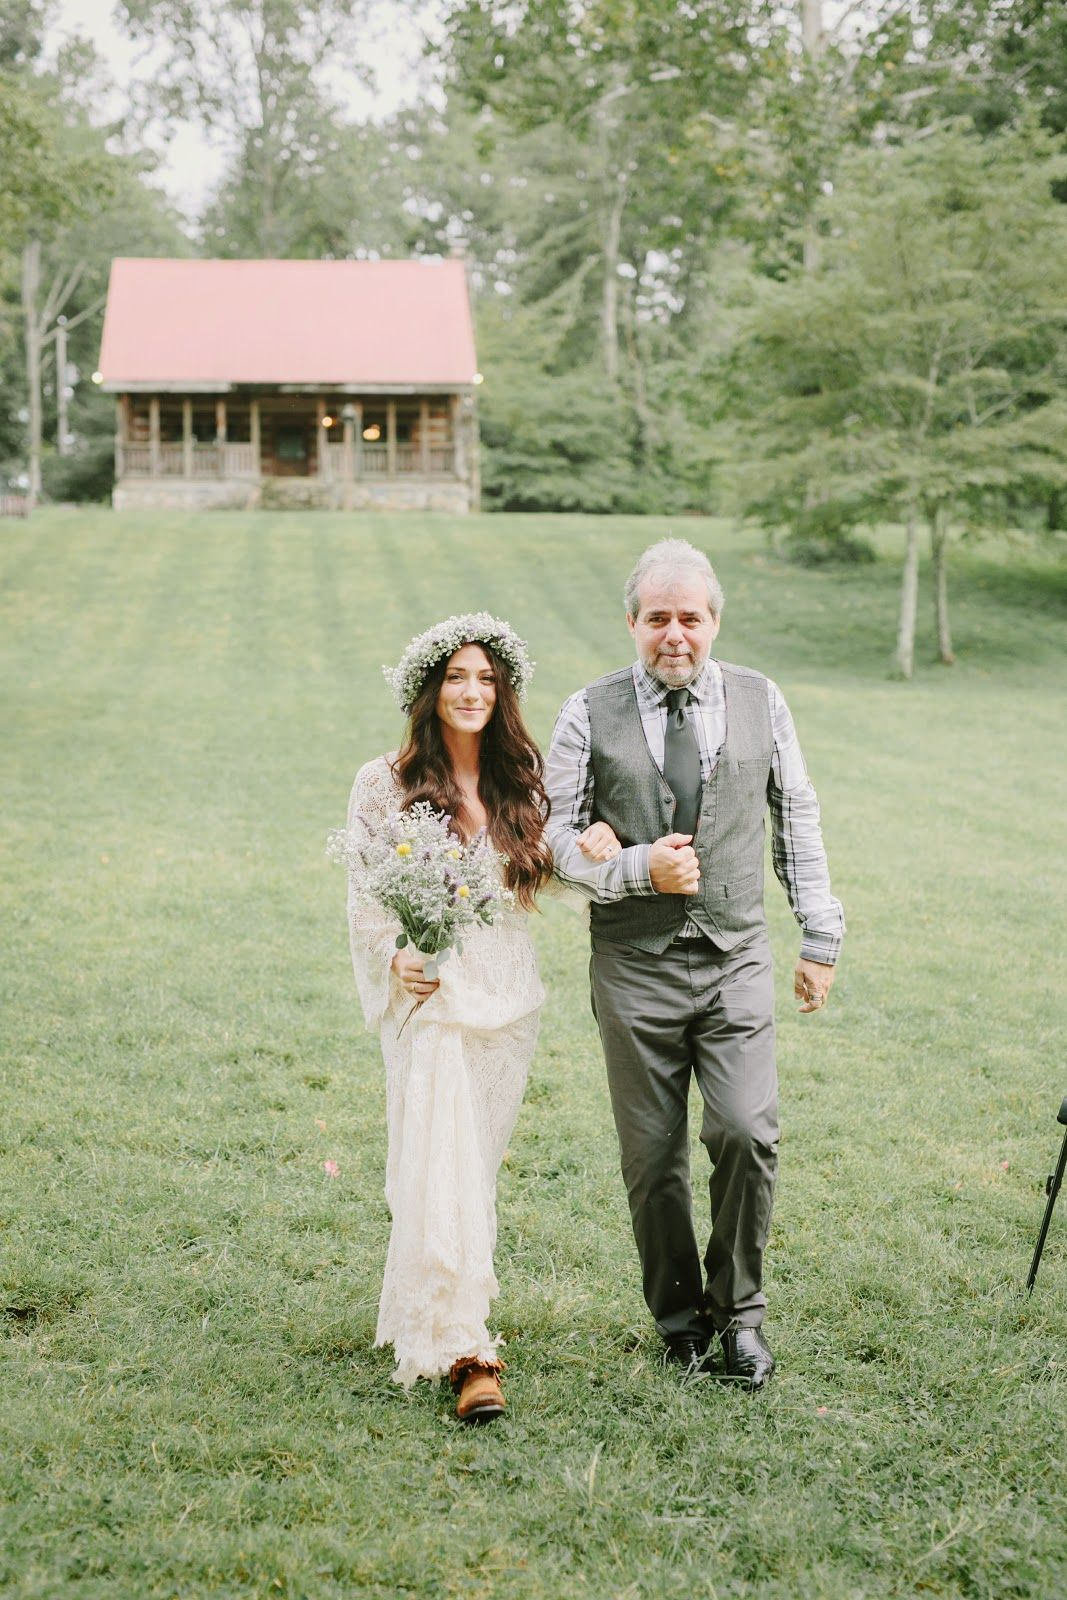 The simple wedding point click mrmrs pinterest dad daughter